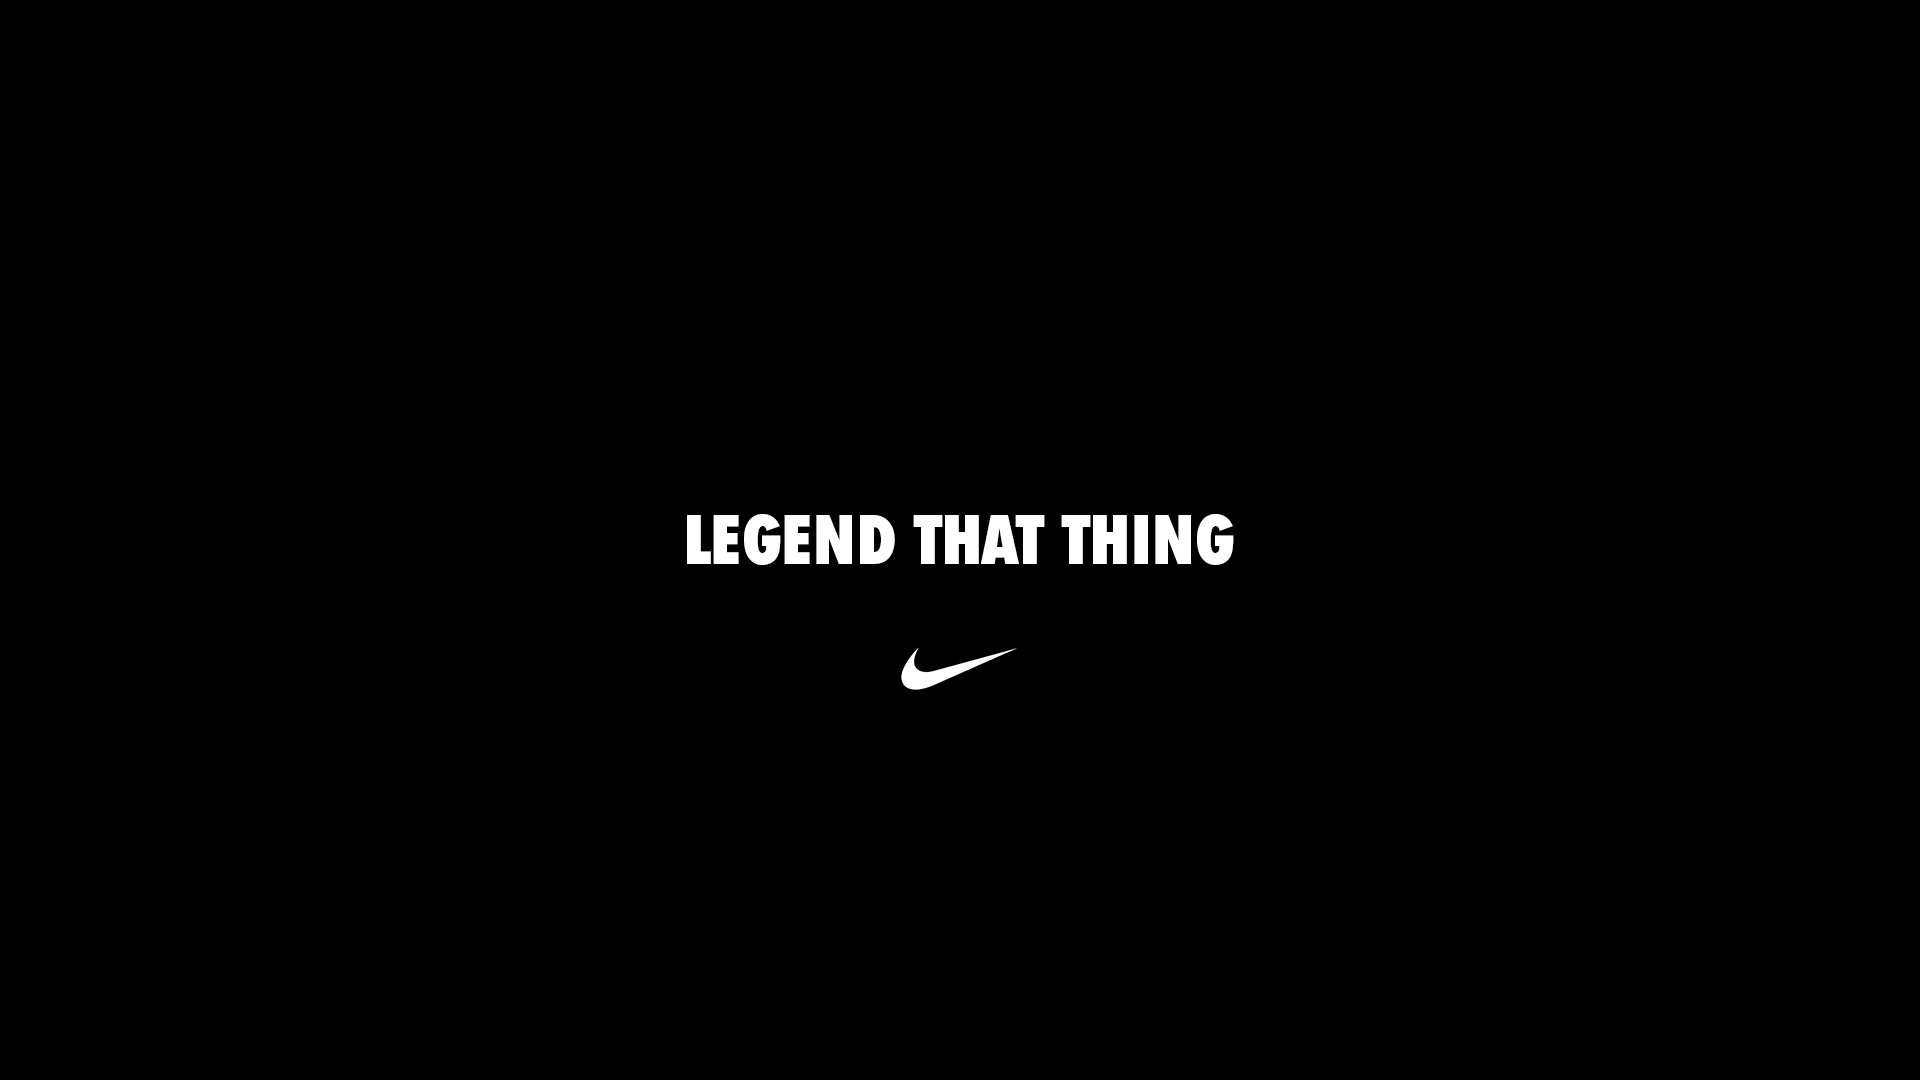 An Ai Trained On Nike Ads Wrote This Spoof Legend That Thing Lbbonline